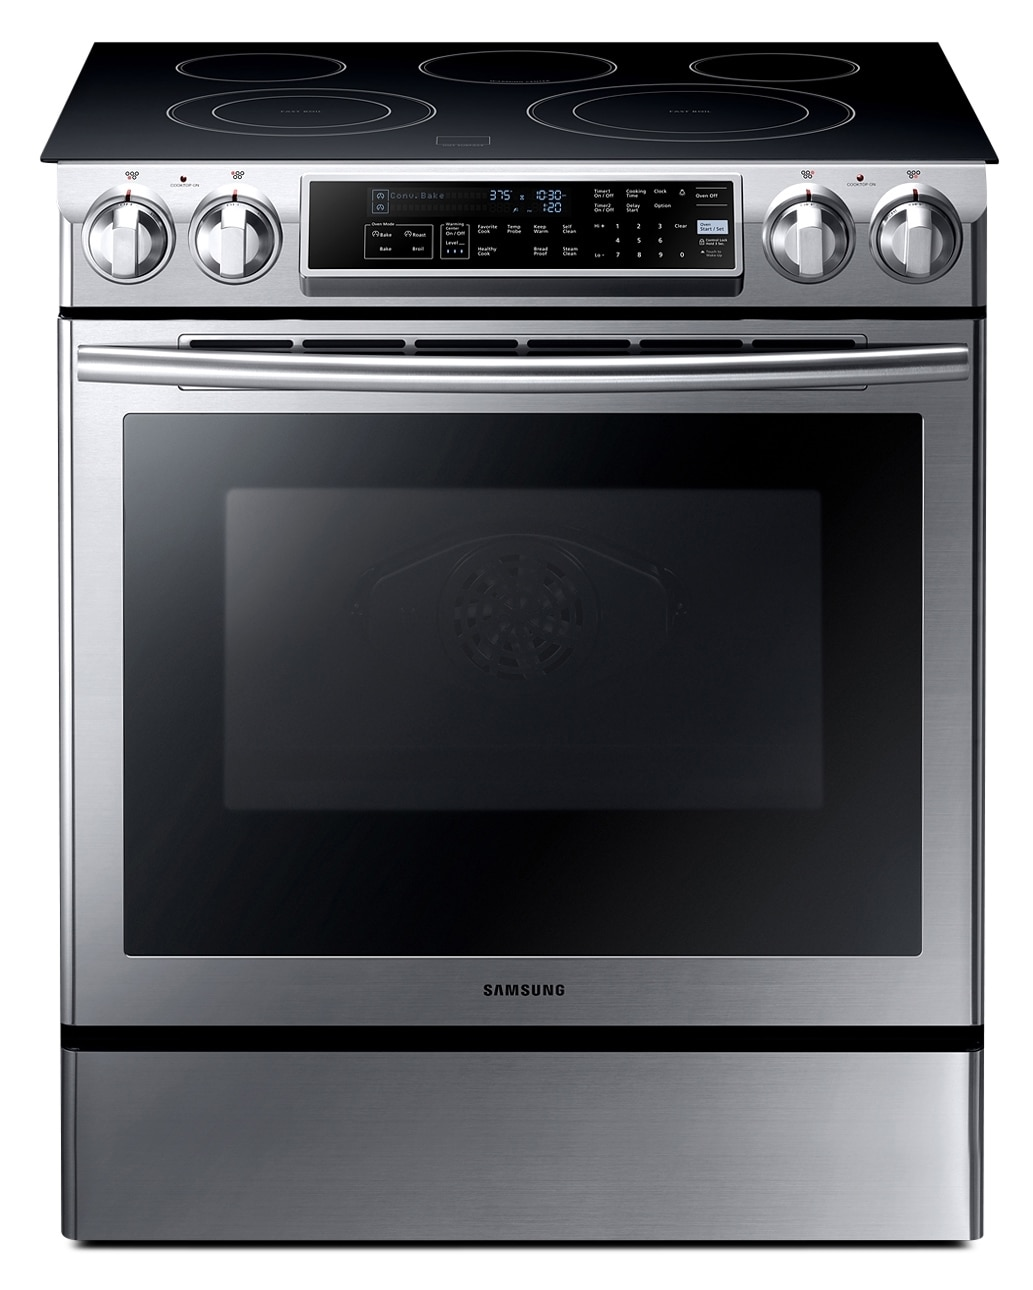 [Samsung Stainless Steel Electric Slide-In Range (5.8 Cu. Ft.) - NE58F9500SS]